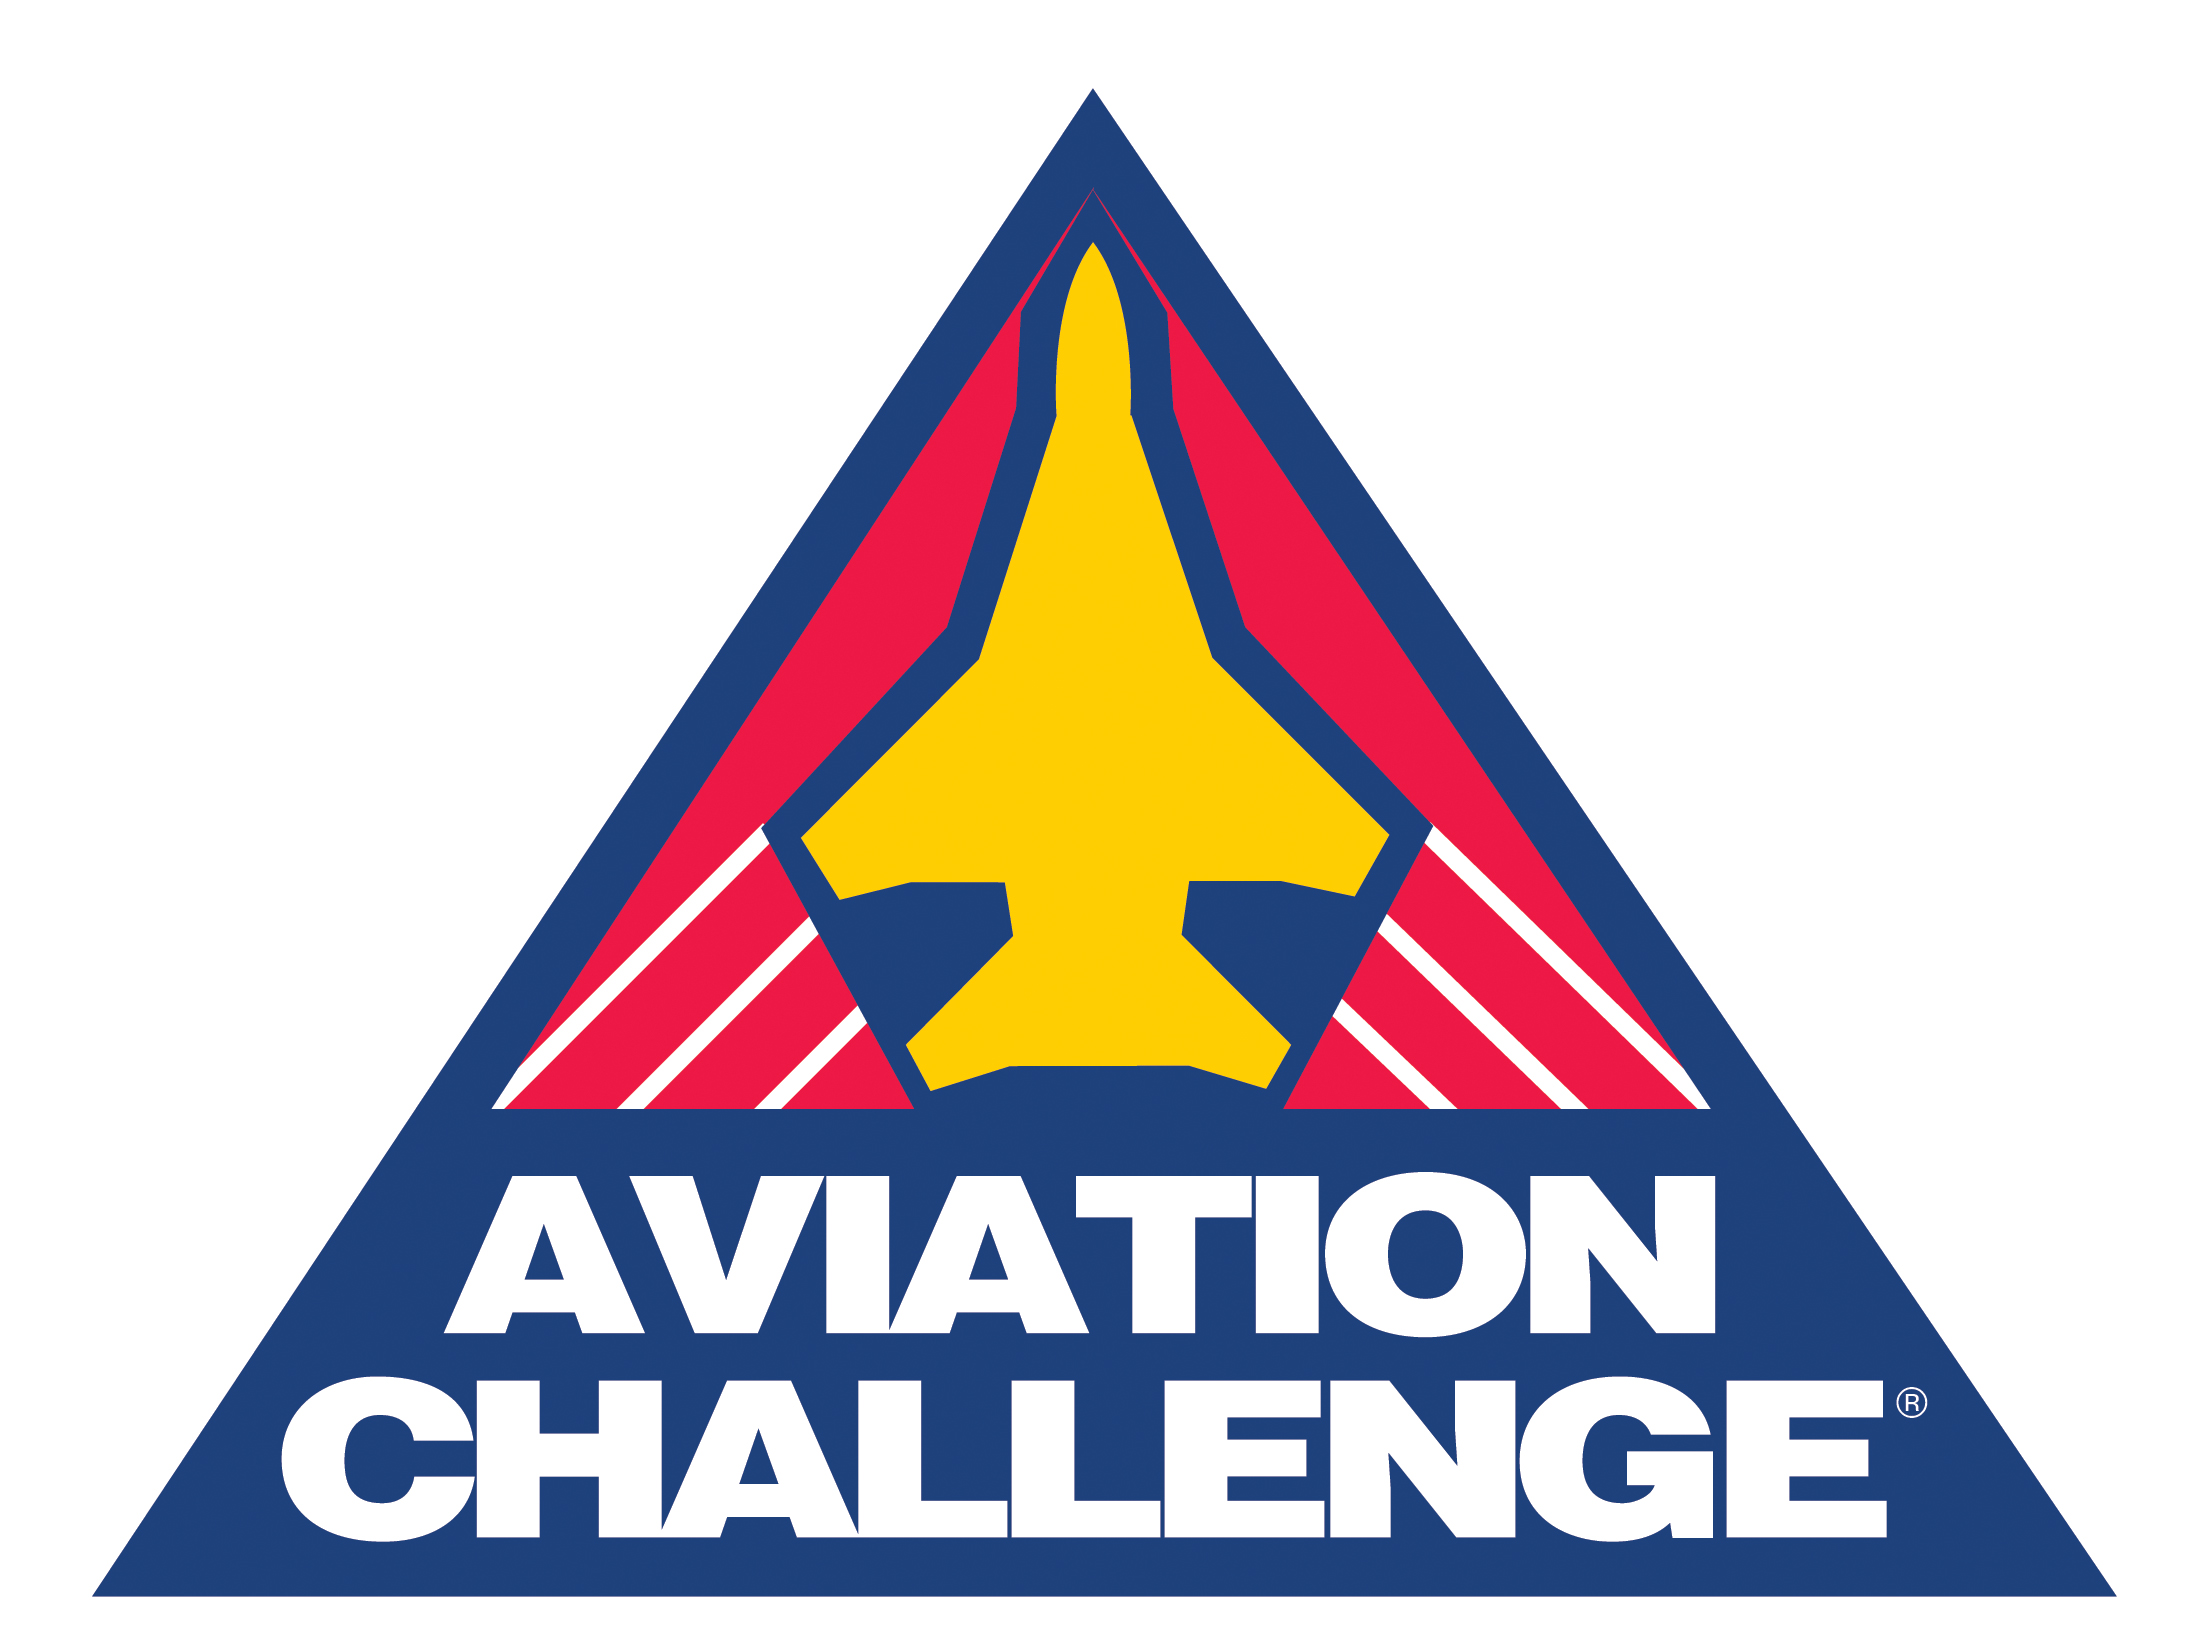 aviation challenge logo15